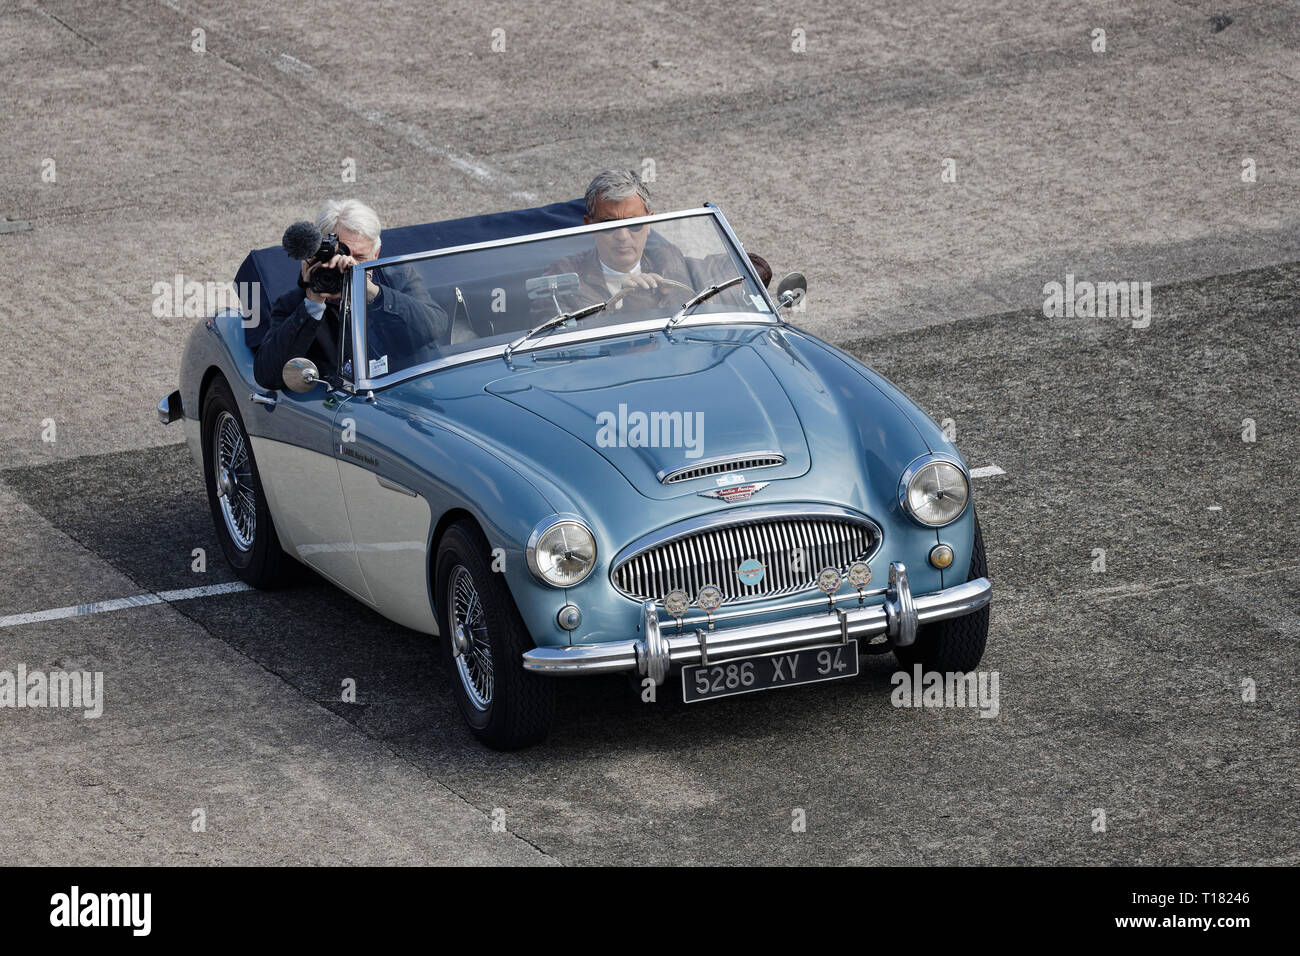 Linas-Montlhéry, France. 23rd Mar, 2019. Austin-Healey 3000 MkII - God Save The Car and the Motorcycle allows enthusiasts to admire English vintage cars and motorcycles on the mythical Linas-Montlhéry circuit, on March 23, 2019 in Linas-Montlhéry, France. Credit: Bernard Menigault/Alamy Live News - Stock Image